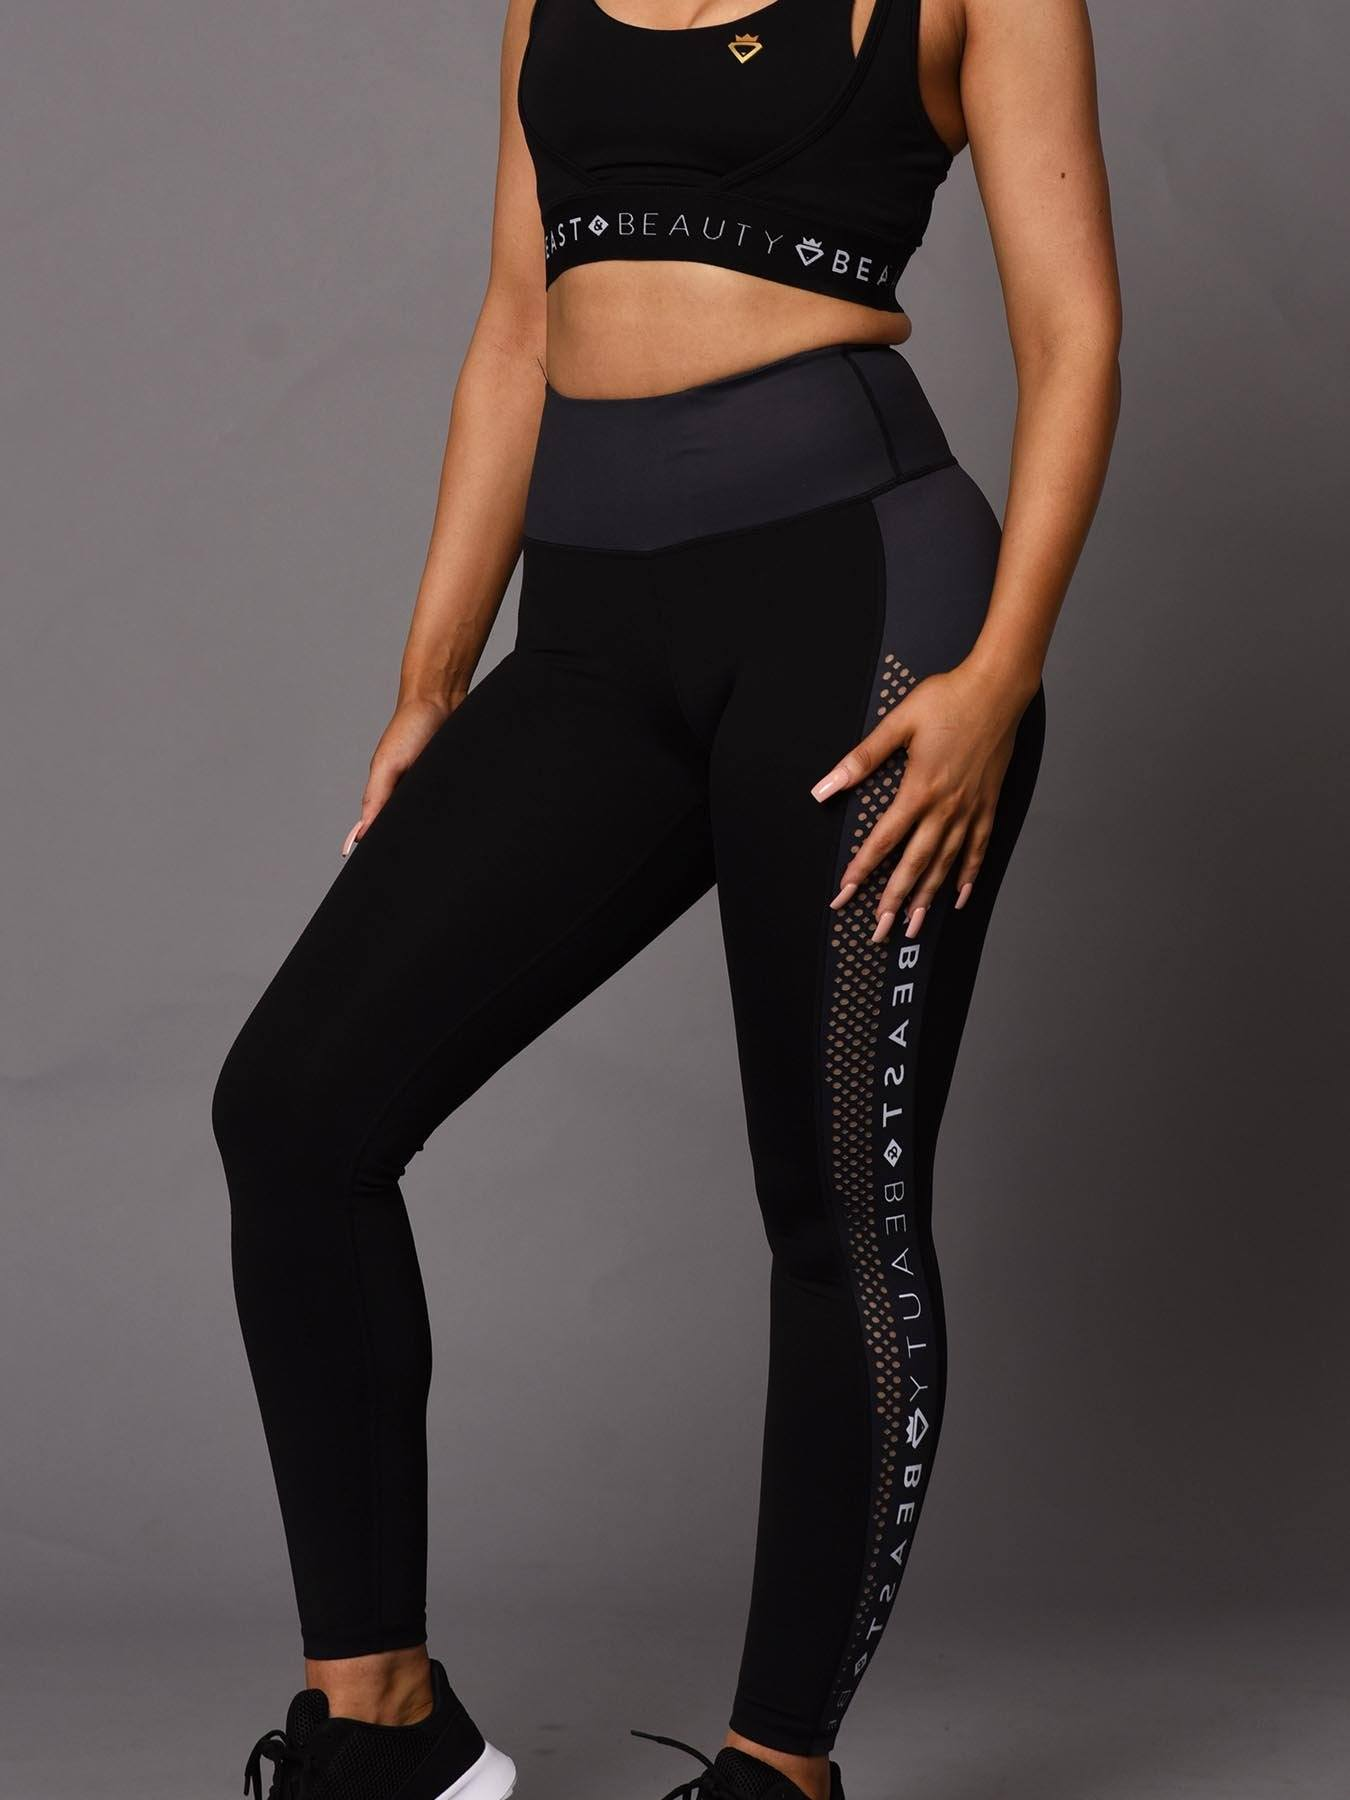 Beauty Running Logo Leggings - Black